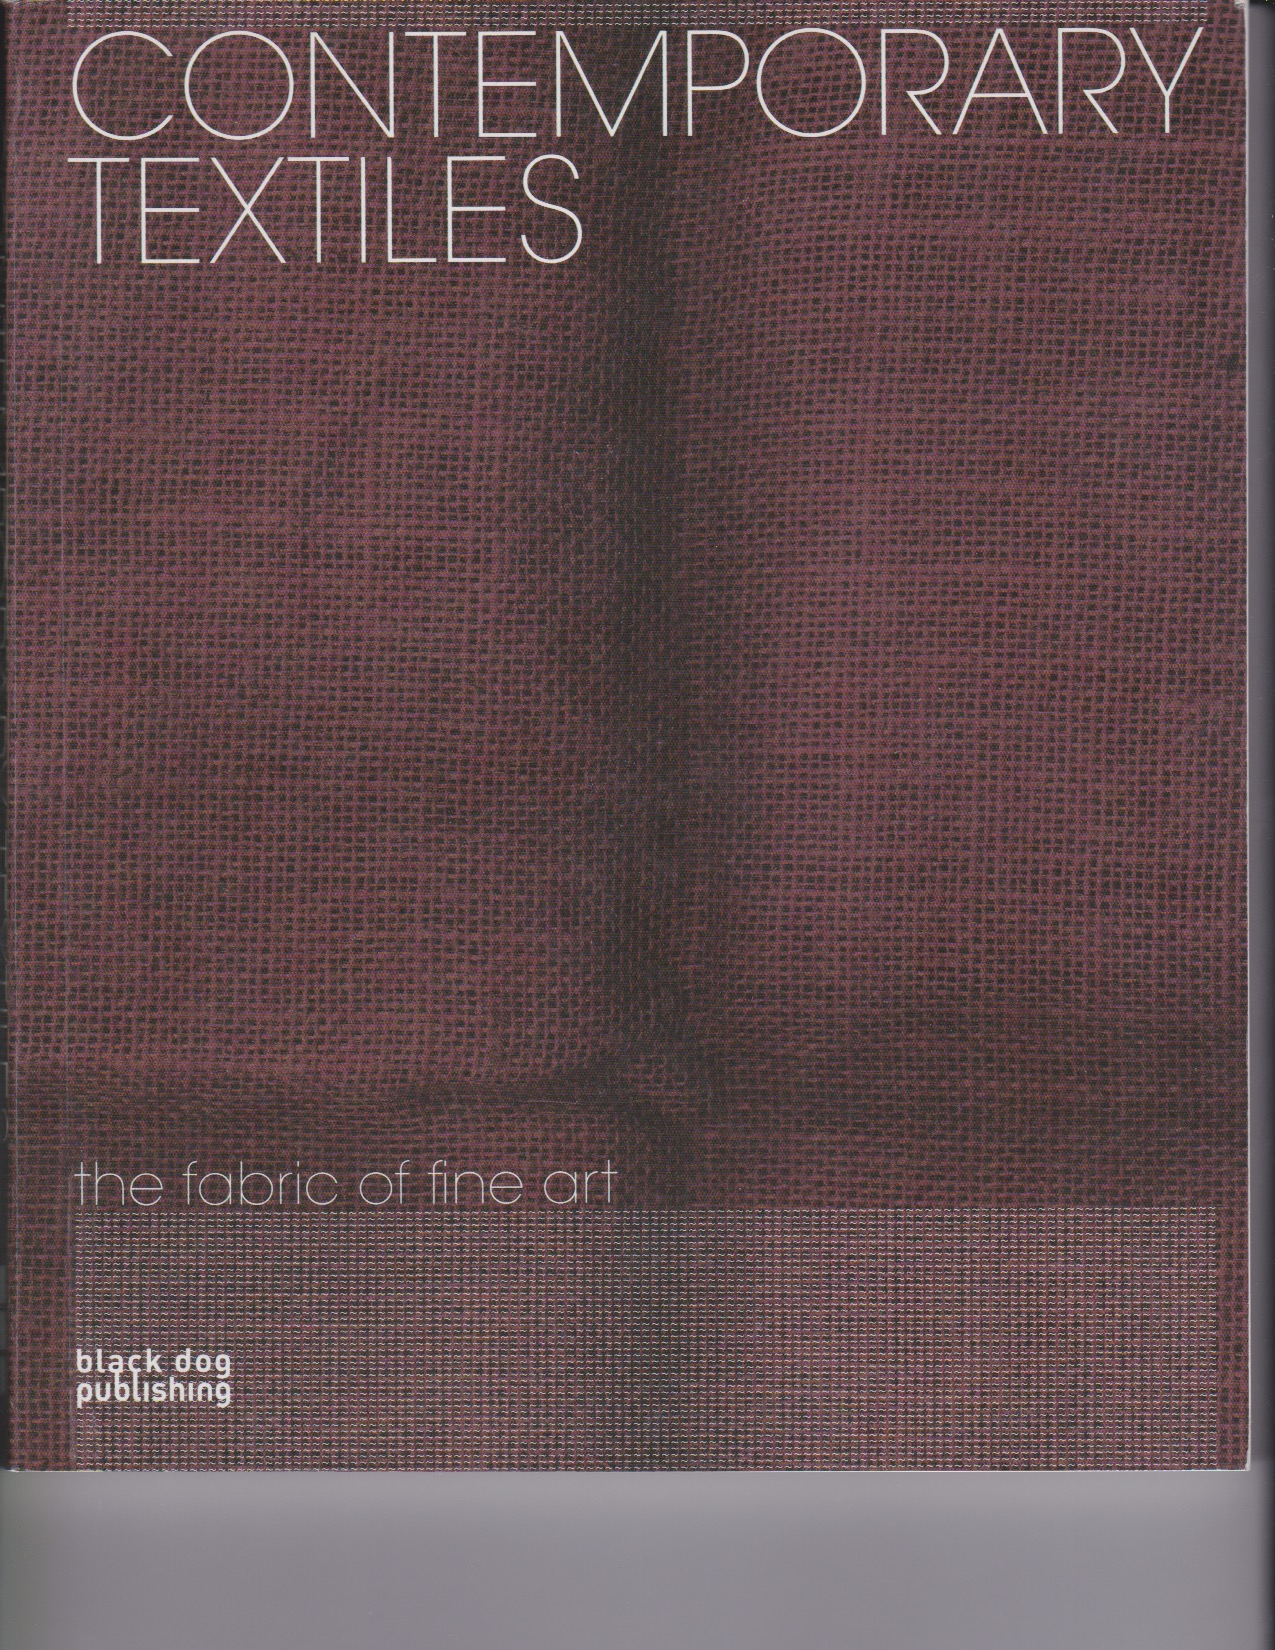 Contemp Textile cover.jpeg